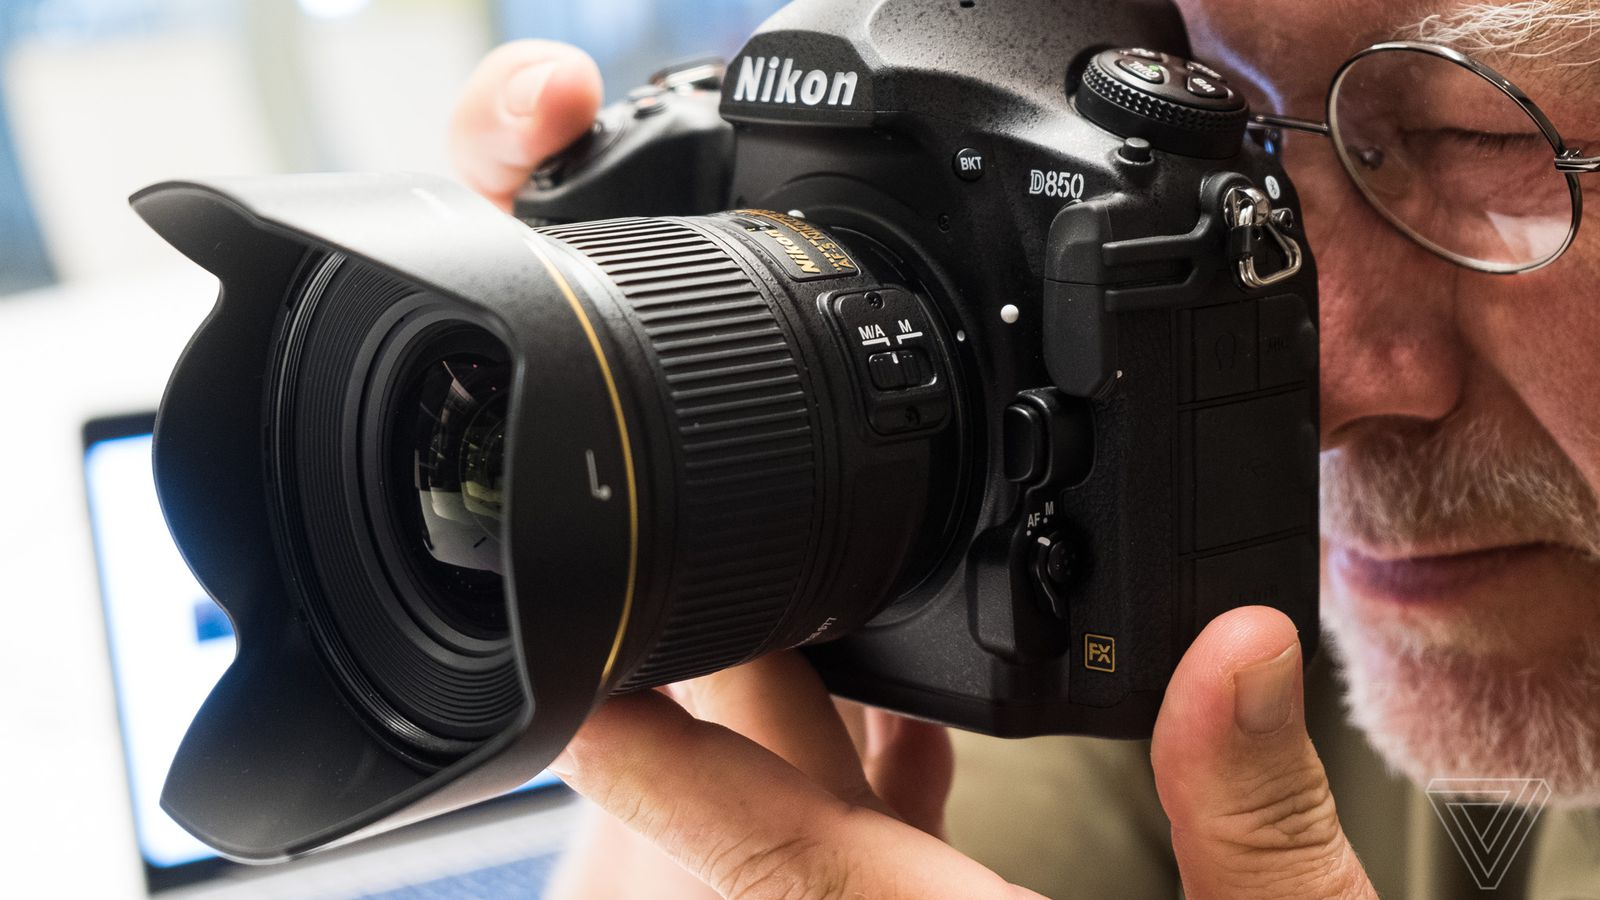 Nikon?s new D850 has 45.7 megapixels and enough features to tempt Canon shooters